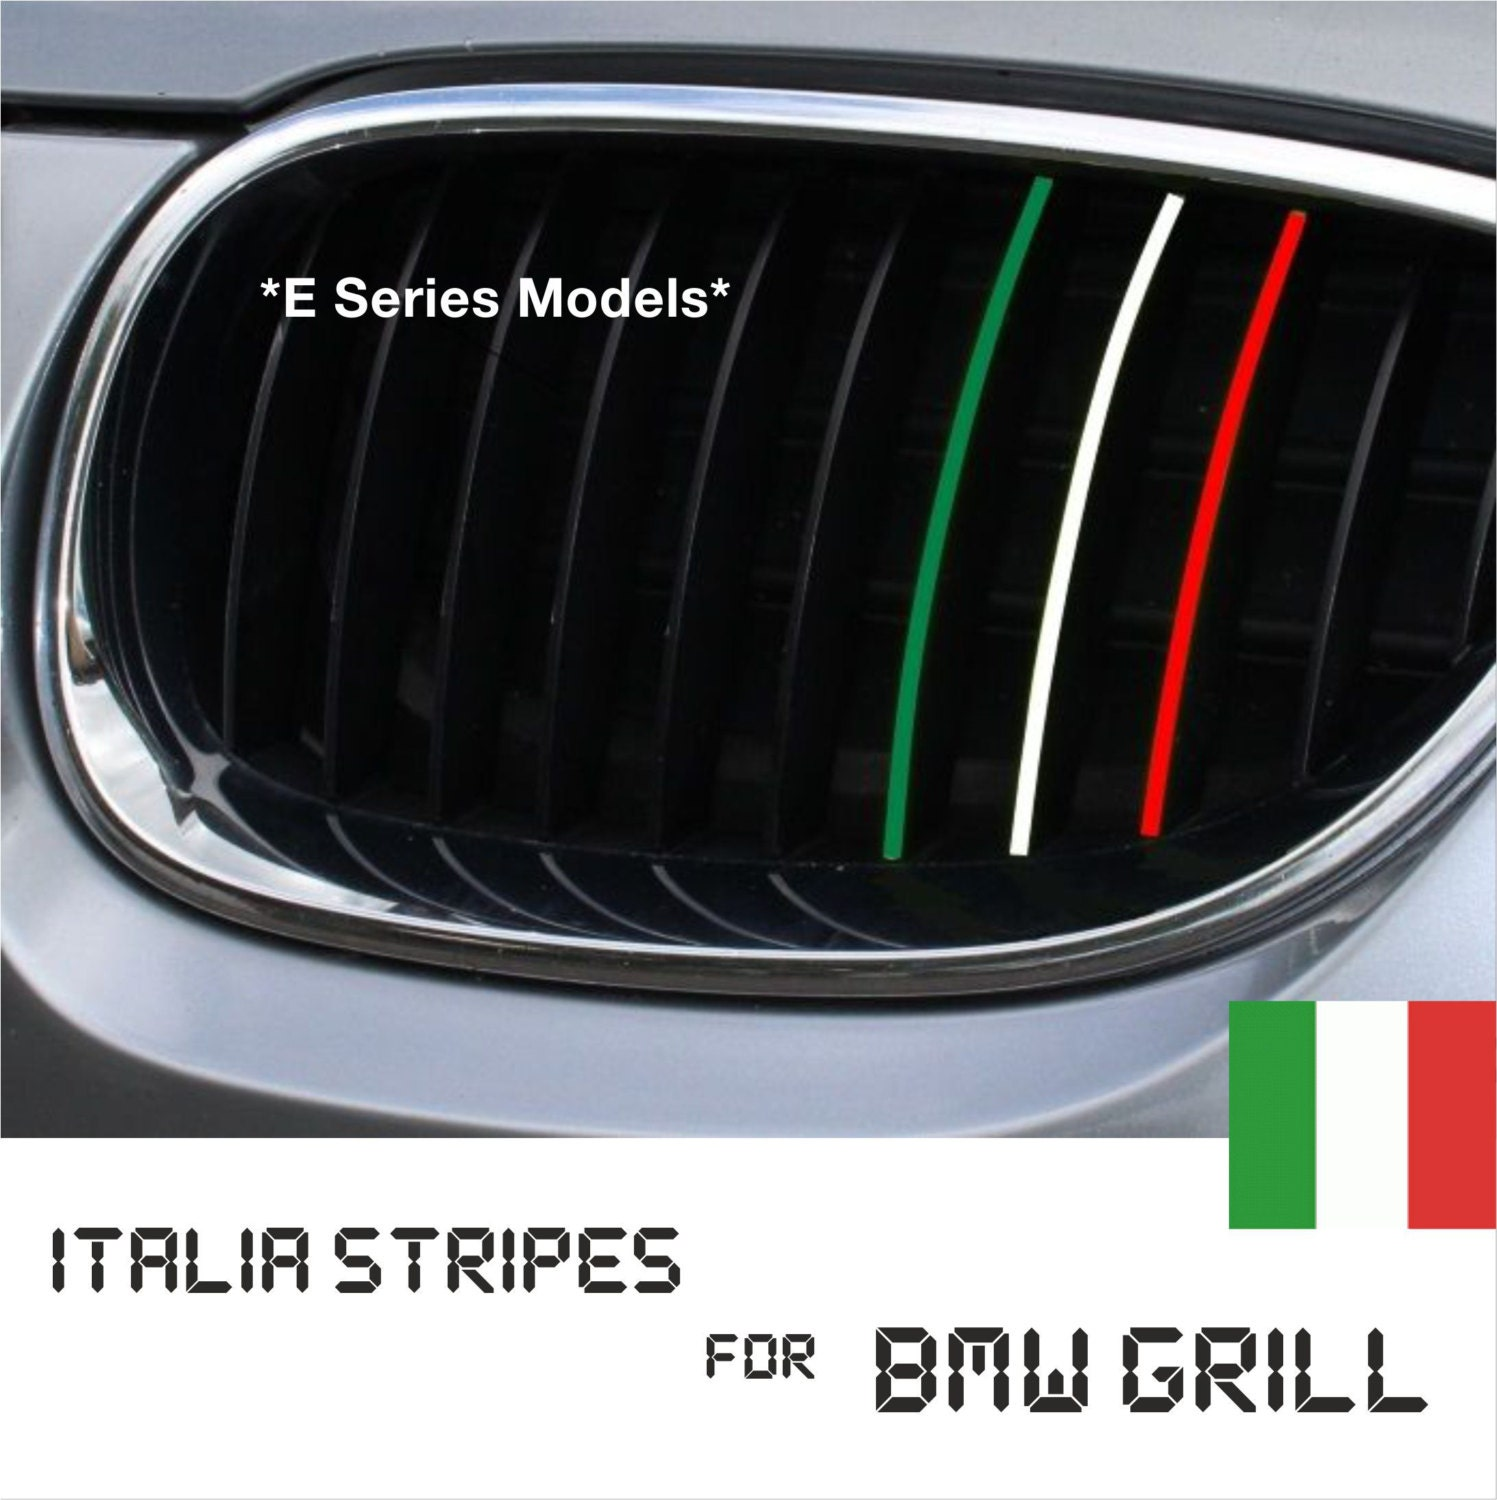 BMW Kidney Grill Italy Italian Stripes M Sport Sticker Decal - Bmw grille stripe decals